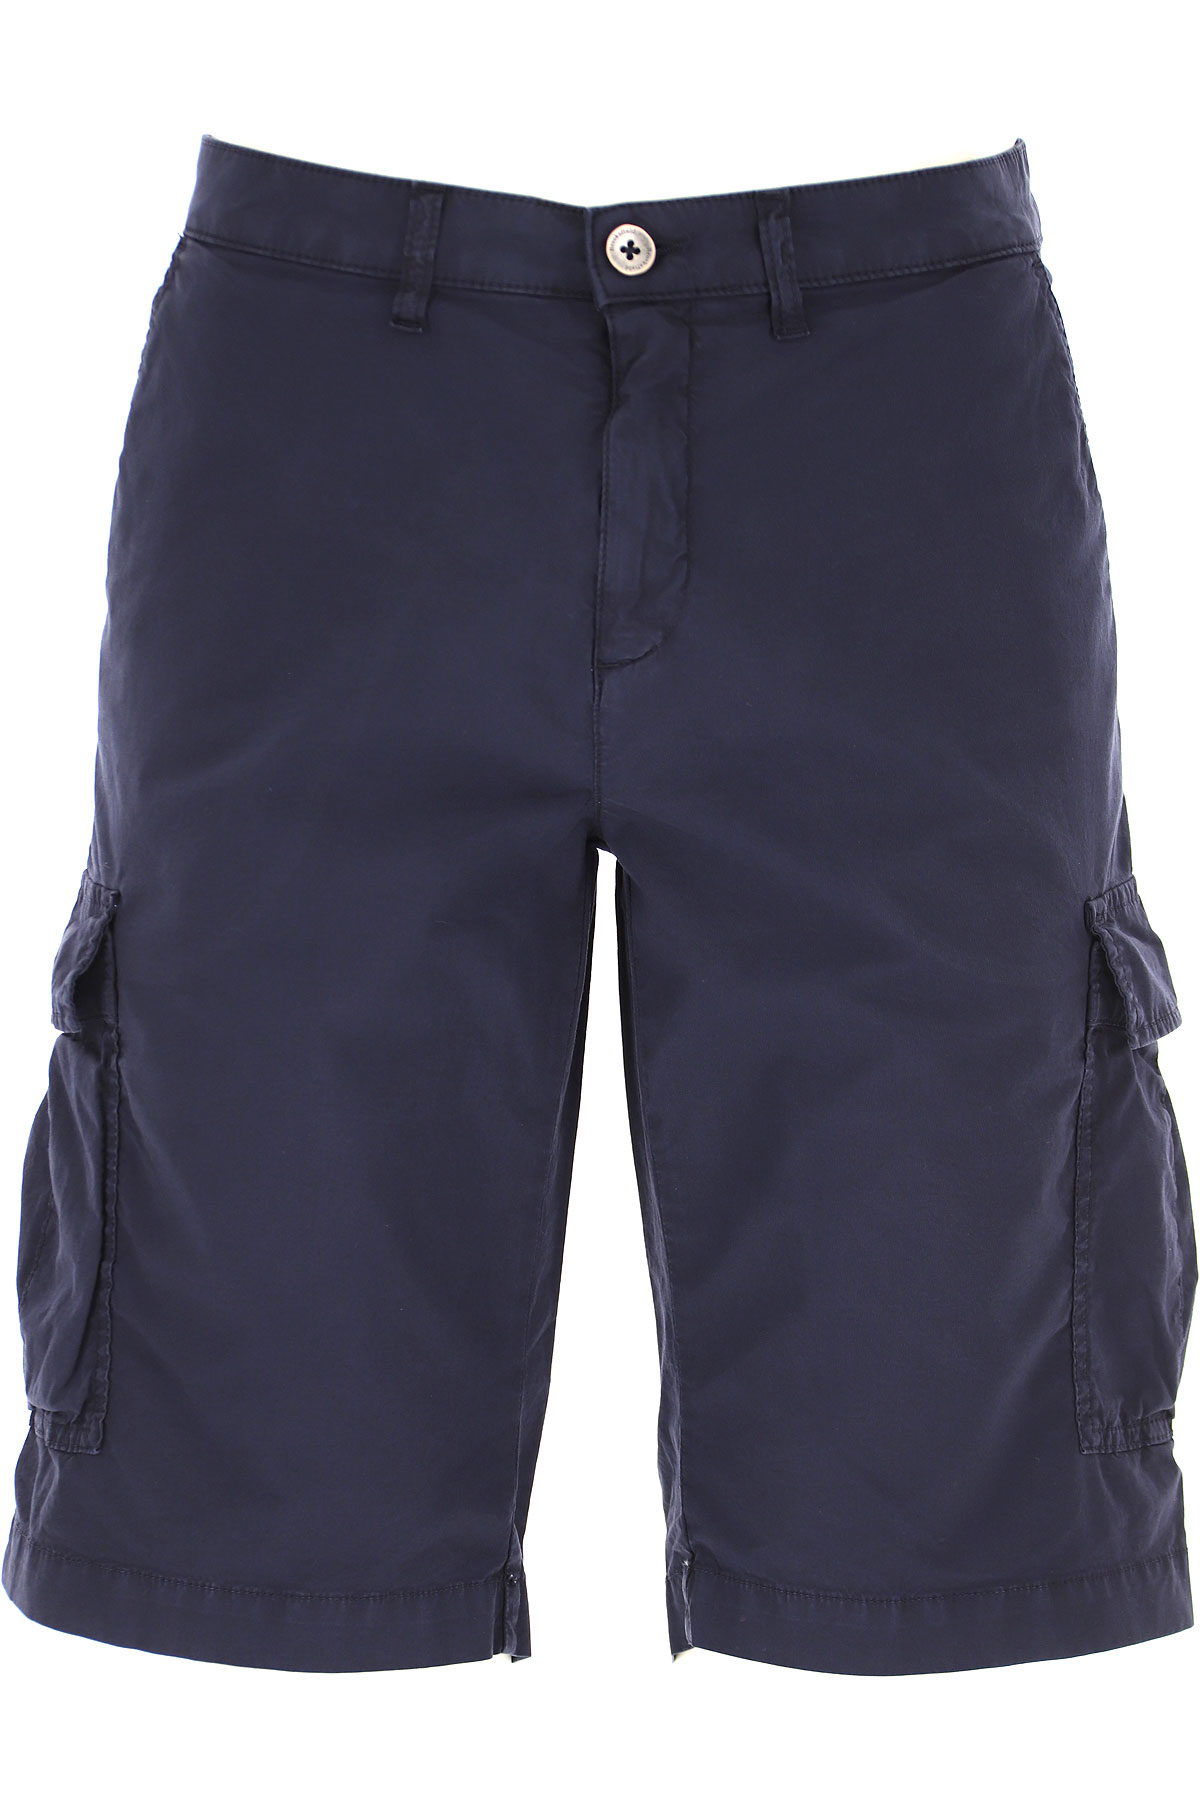 Brooksfield Shorts for Men On Sale, Blue Navy, Cotton, 2019, 32 34 36 38